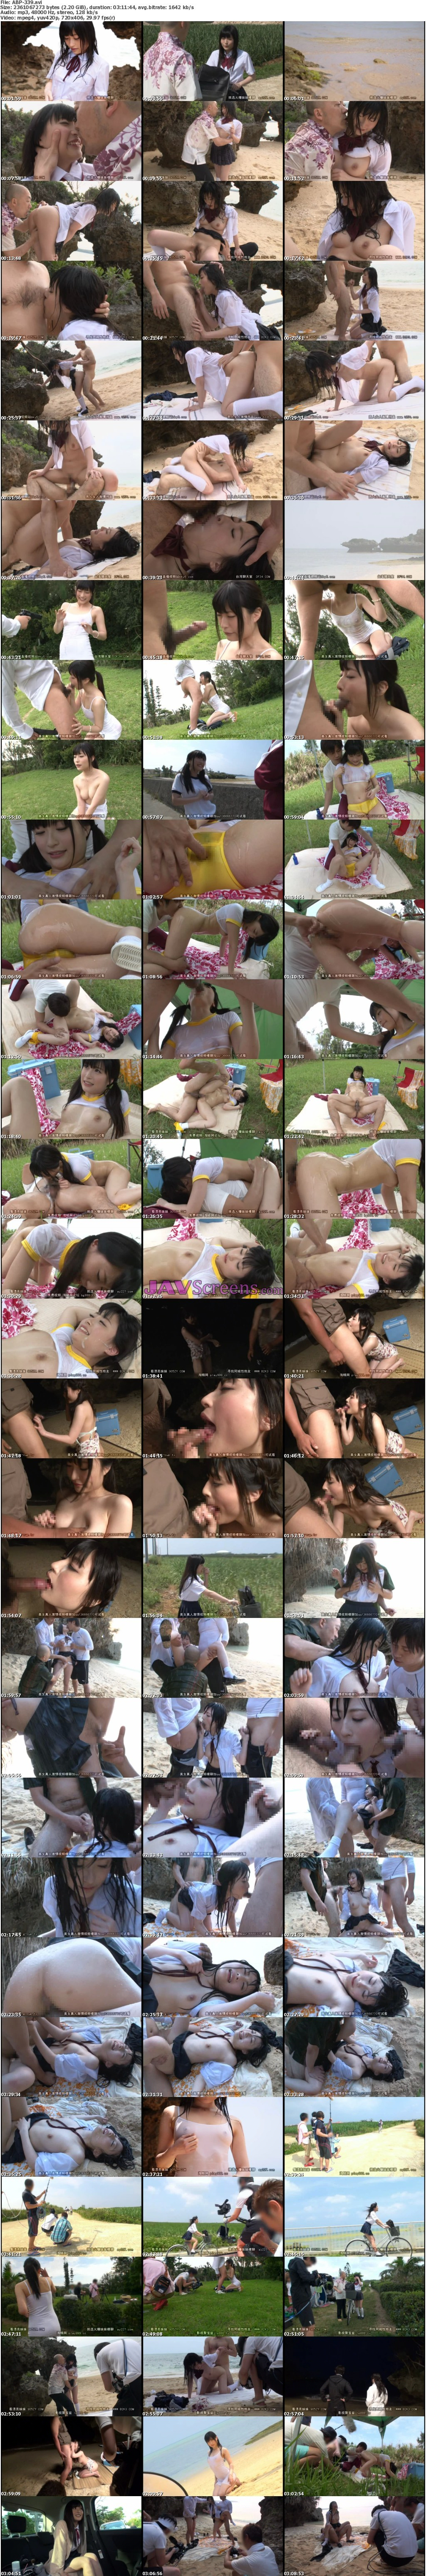 ABP-339.jpg - JAV Screenshot